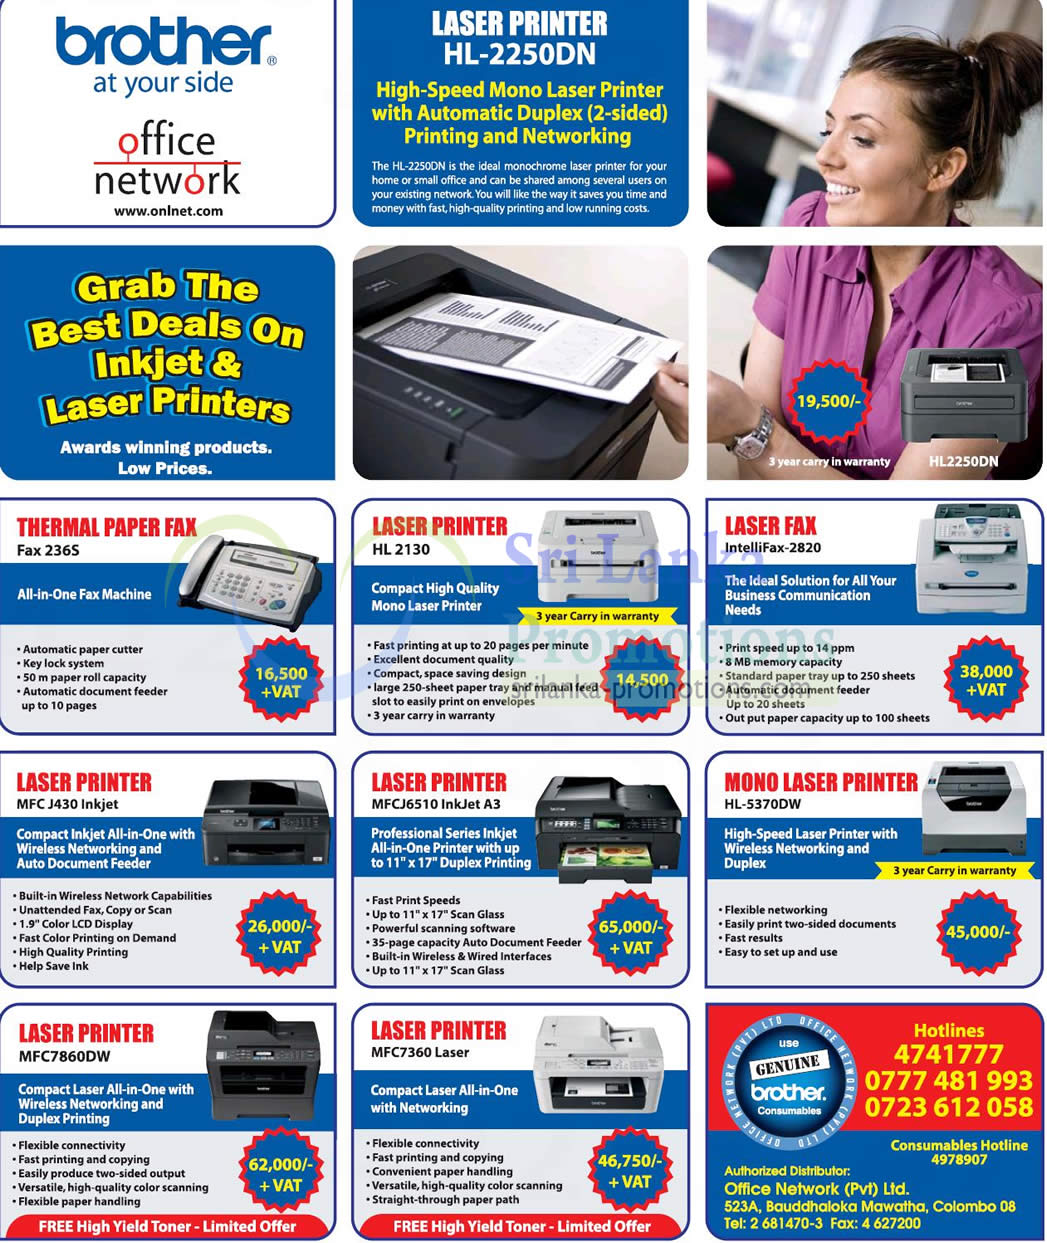 Brother Printers Office Network Price List 4 Nov 2012